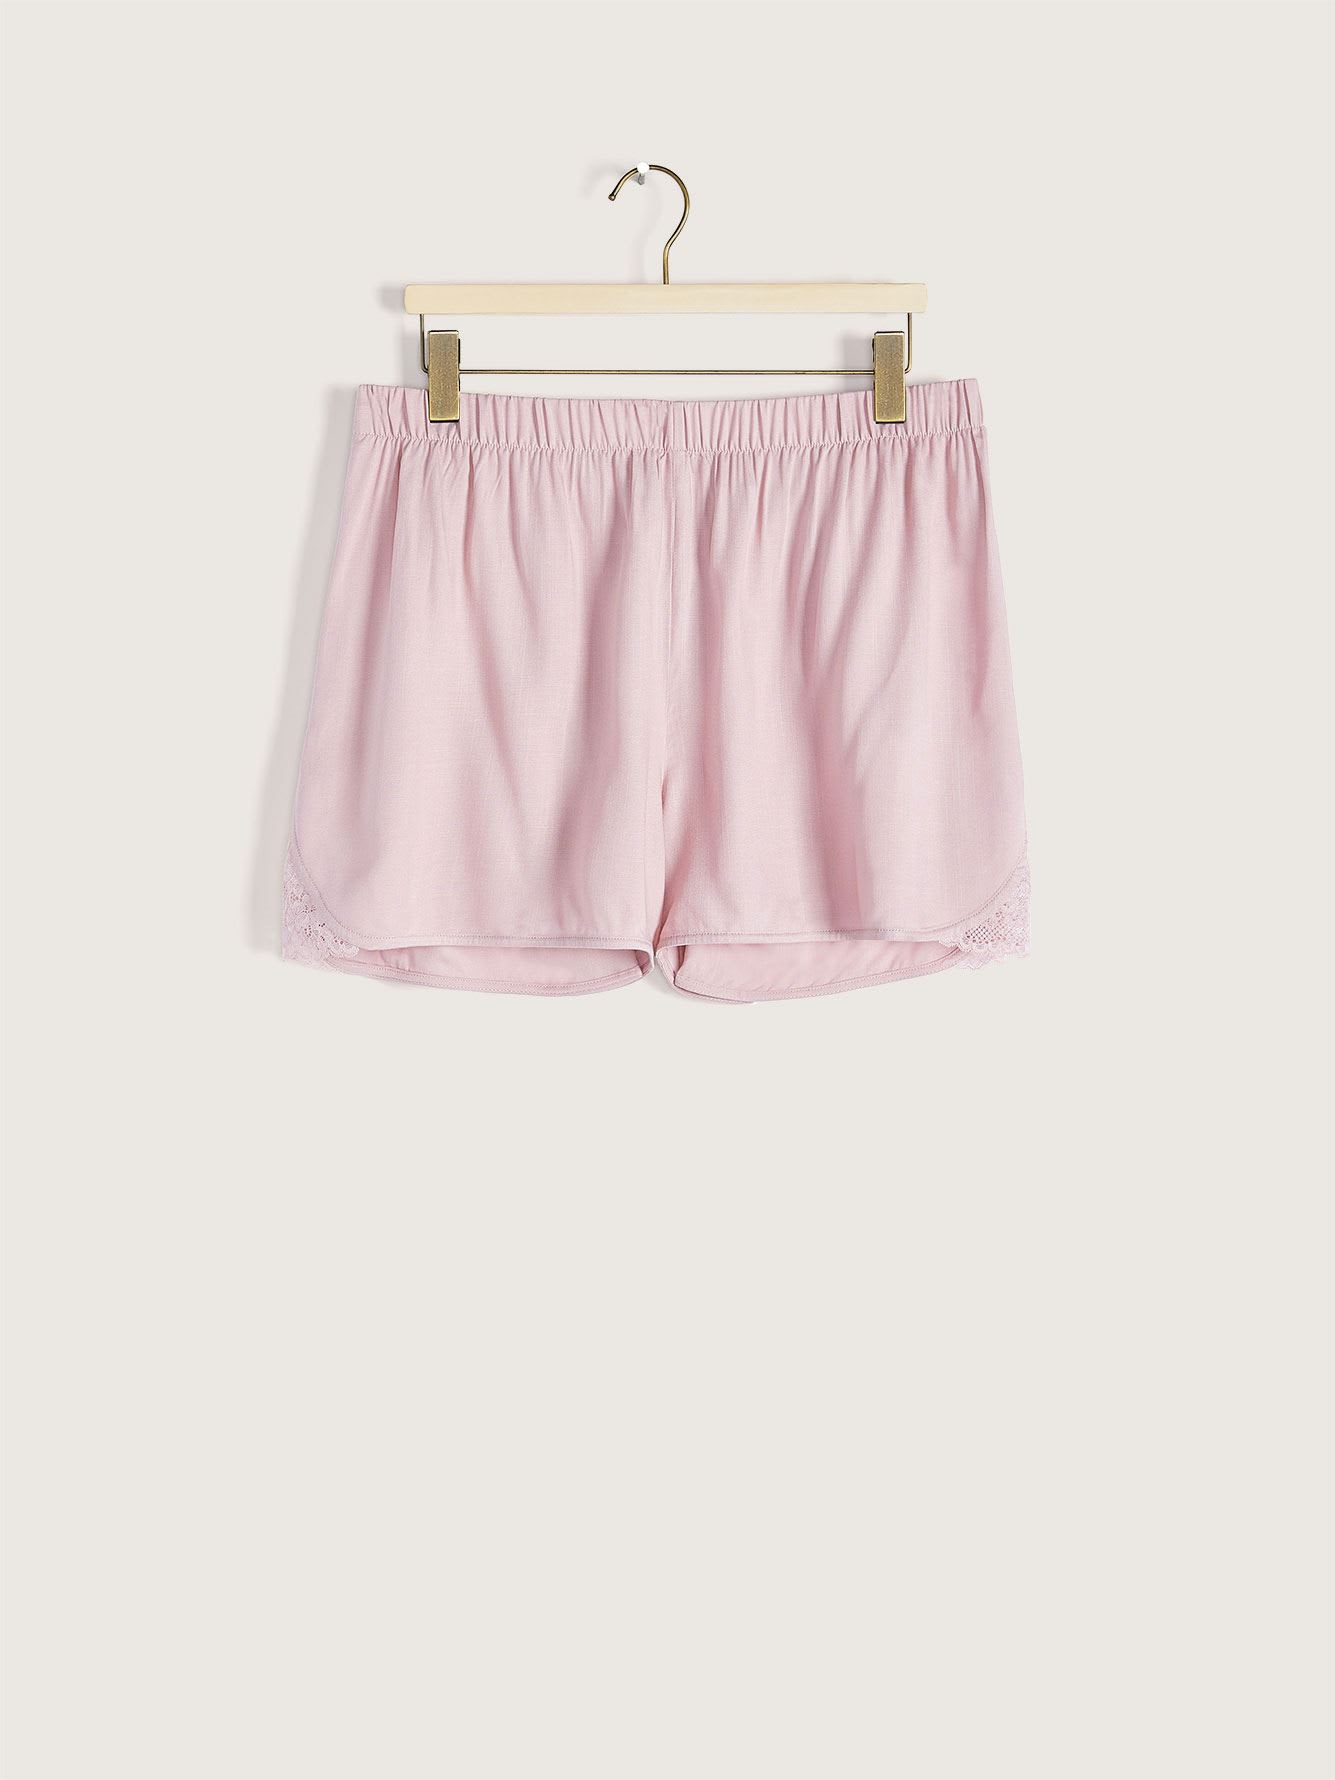 Pajama Short with Lace Trim - Addition Elle